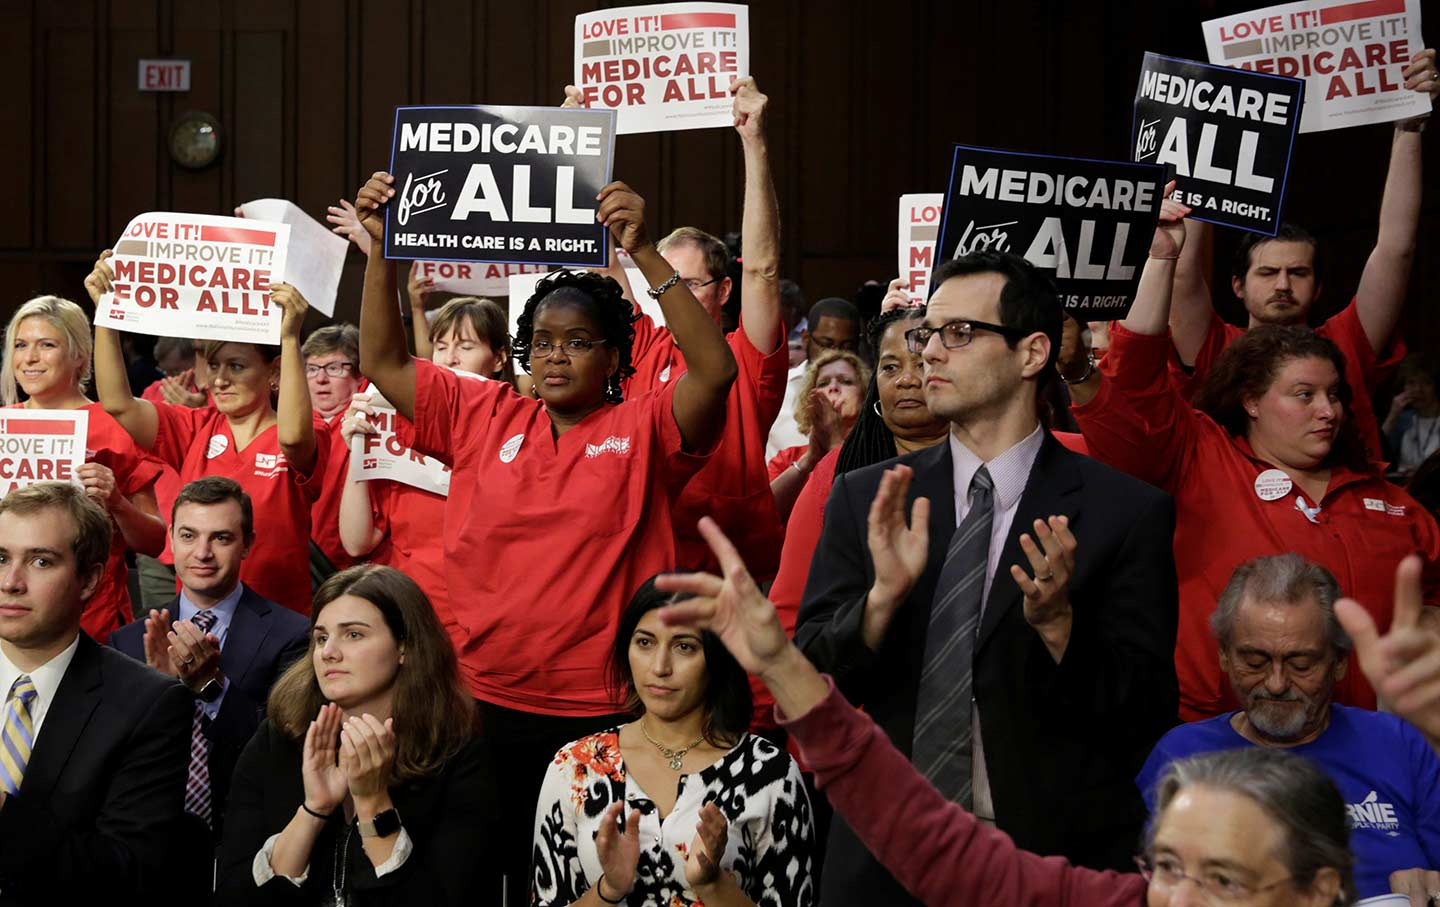 Medicare for All crowd